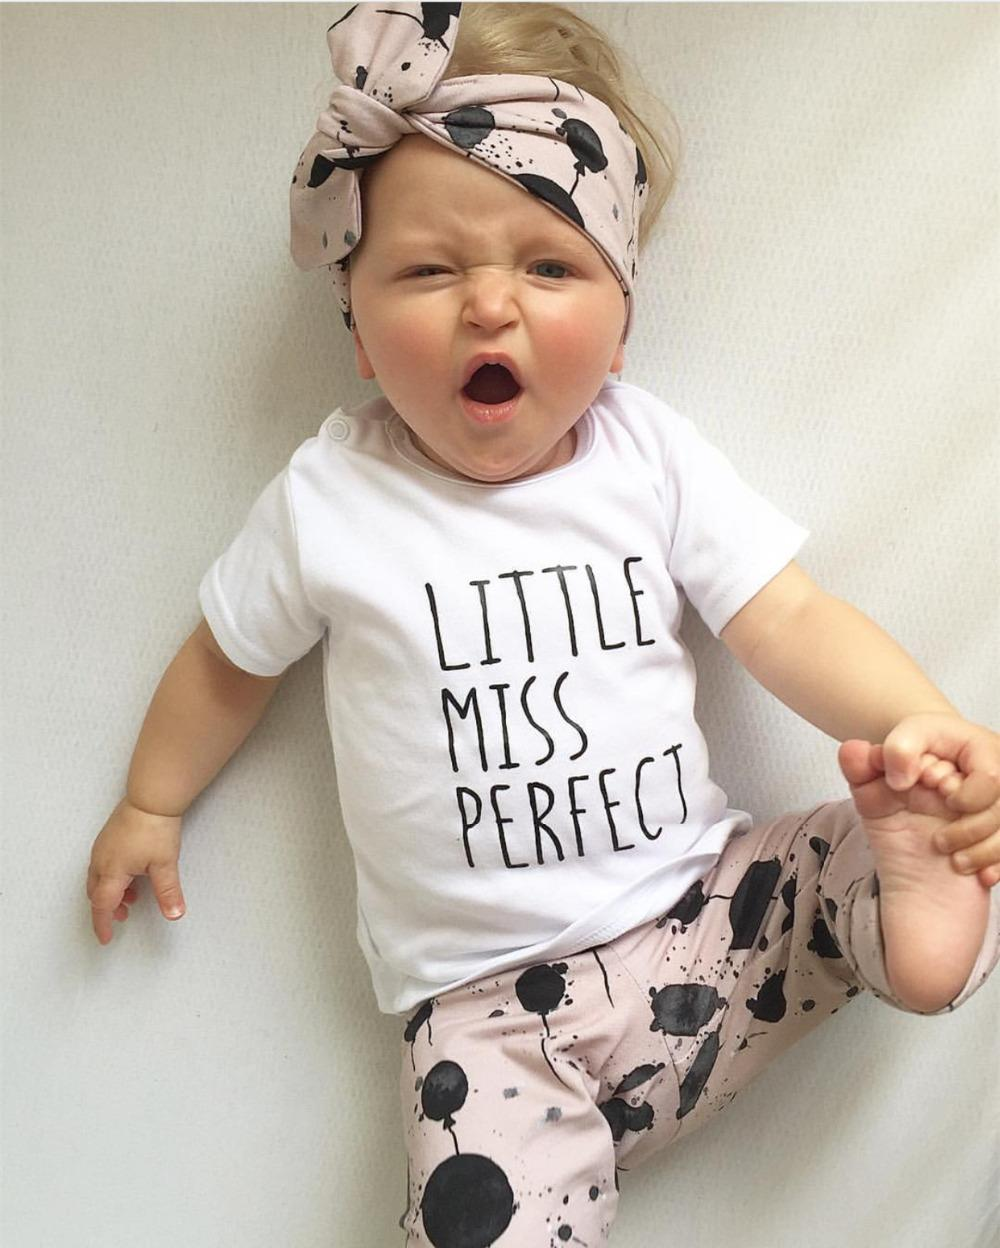 1f544de9e 2019 Baby Girls Clothes Set Long Sleeve Letter T Shirt+Balloon Print  Pants+Headband Infant Newborn Clothing Suit Toddler Outfit Y18100905 From  Shenping02, ...